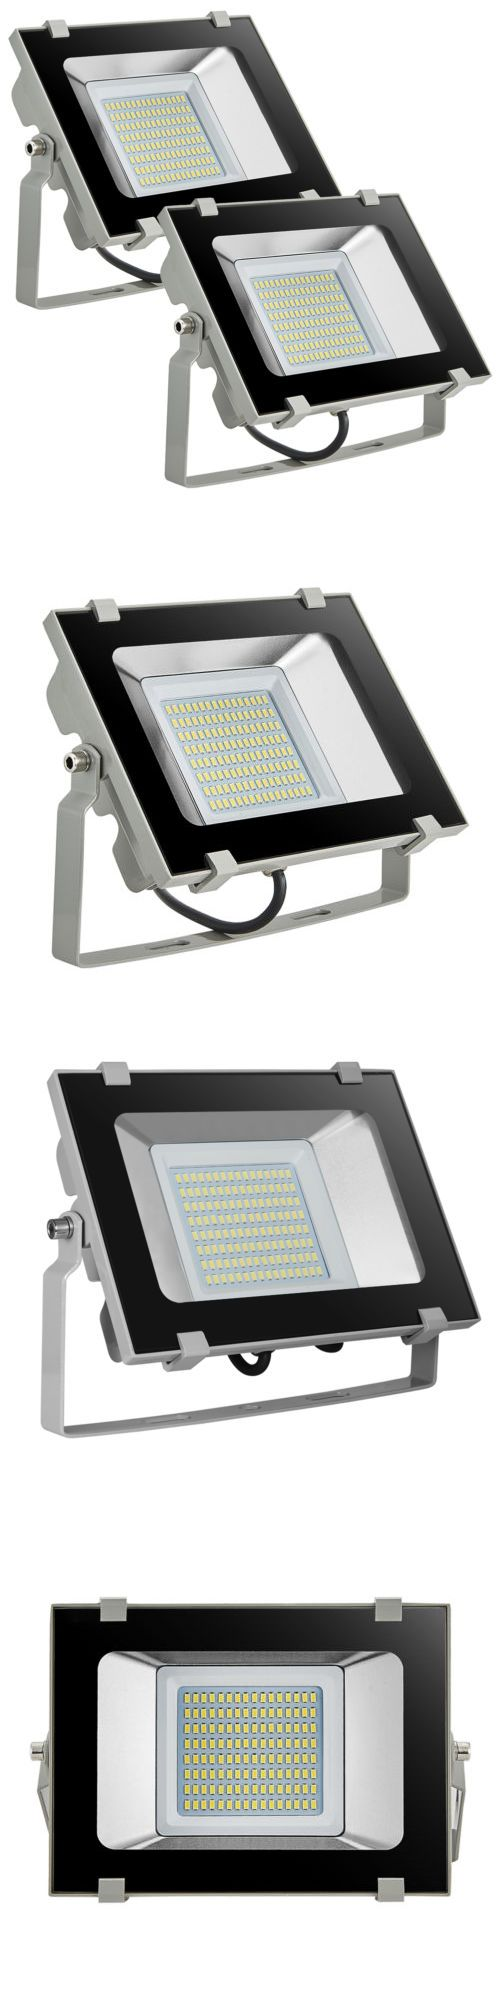 Outdoor Security and Floodlights 183393: 2X50w Flood Light Led Spot Light Cool White Floodlight Outdoor Garden Lamp 110V -> BUY IT NOW ONLY: $61.99 on eBay!